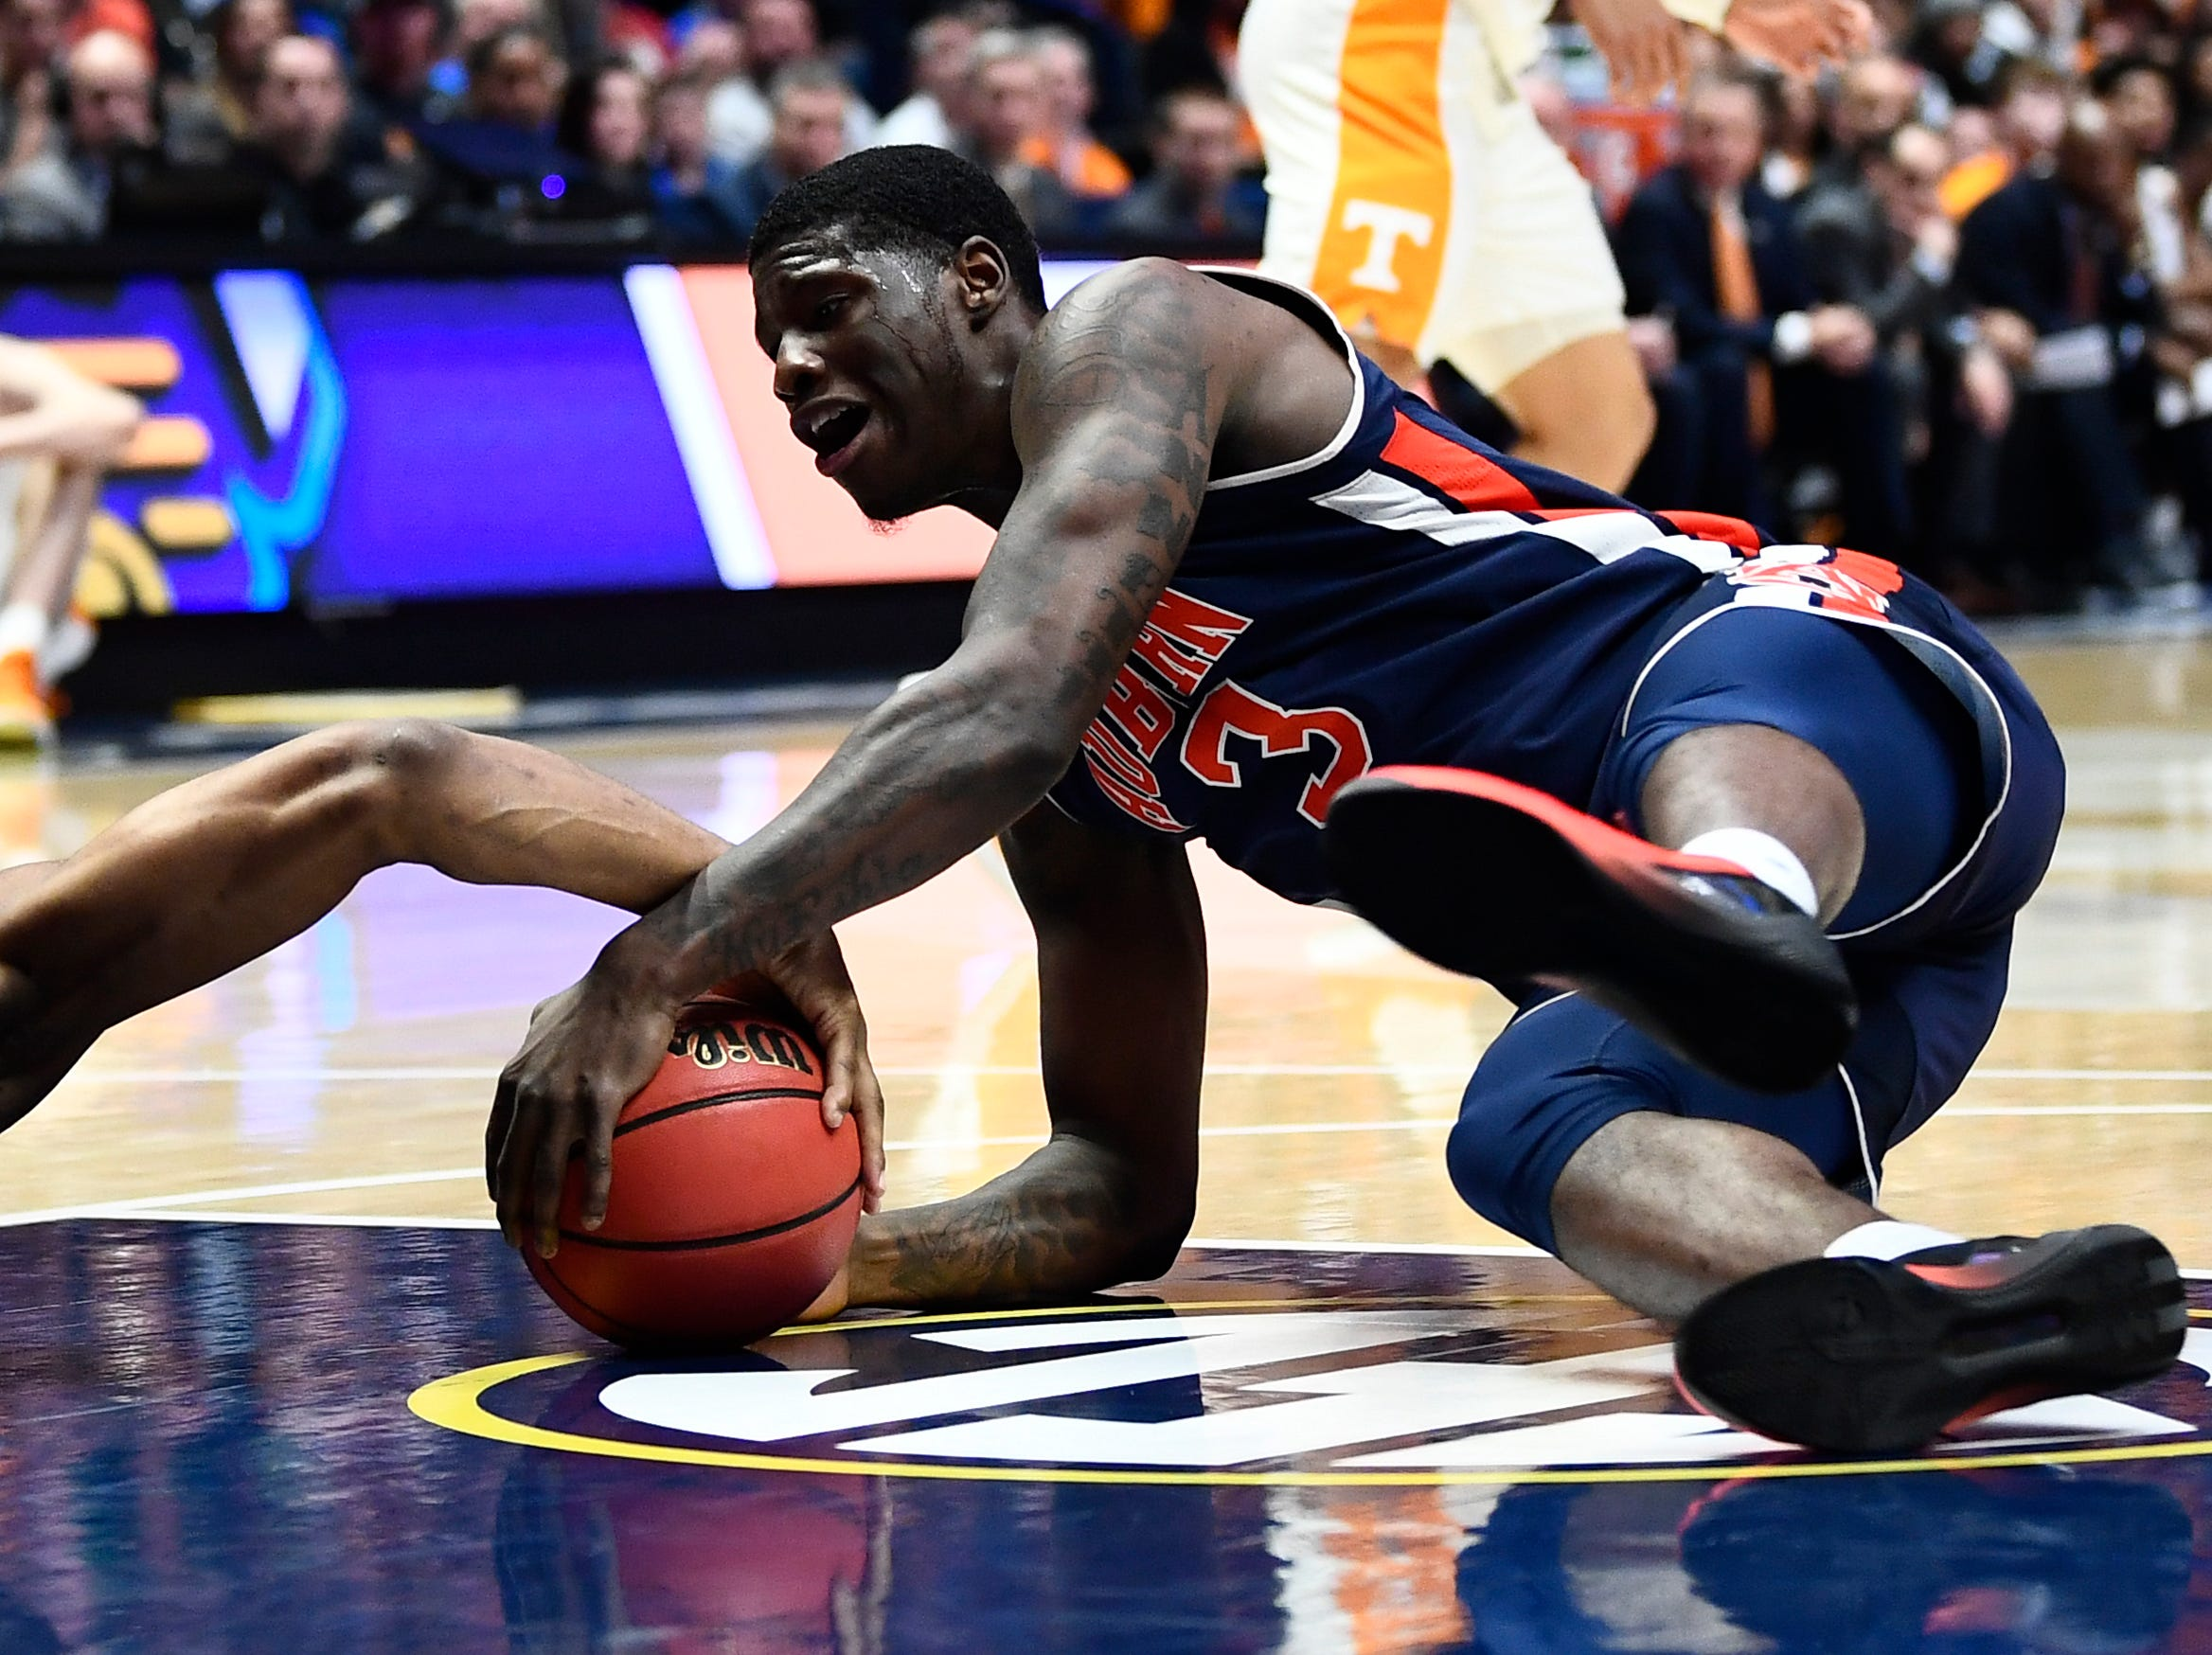 Auburn forward Danjel Purifoy (3) and a teammate fight for a loose ball after a Tennessee turnover during the first half of the SEC Men's Basketball Tournament championship game at Bridgestone Arena in Nashville, Tenn., Sunday, March 17, 2019.